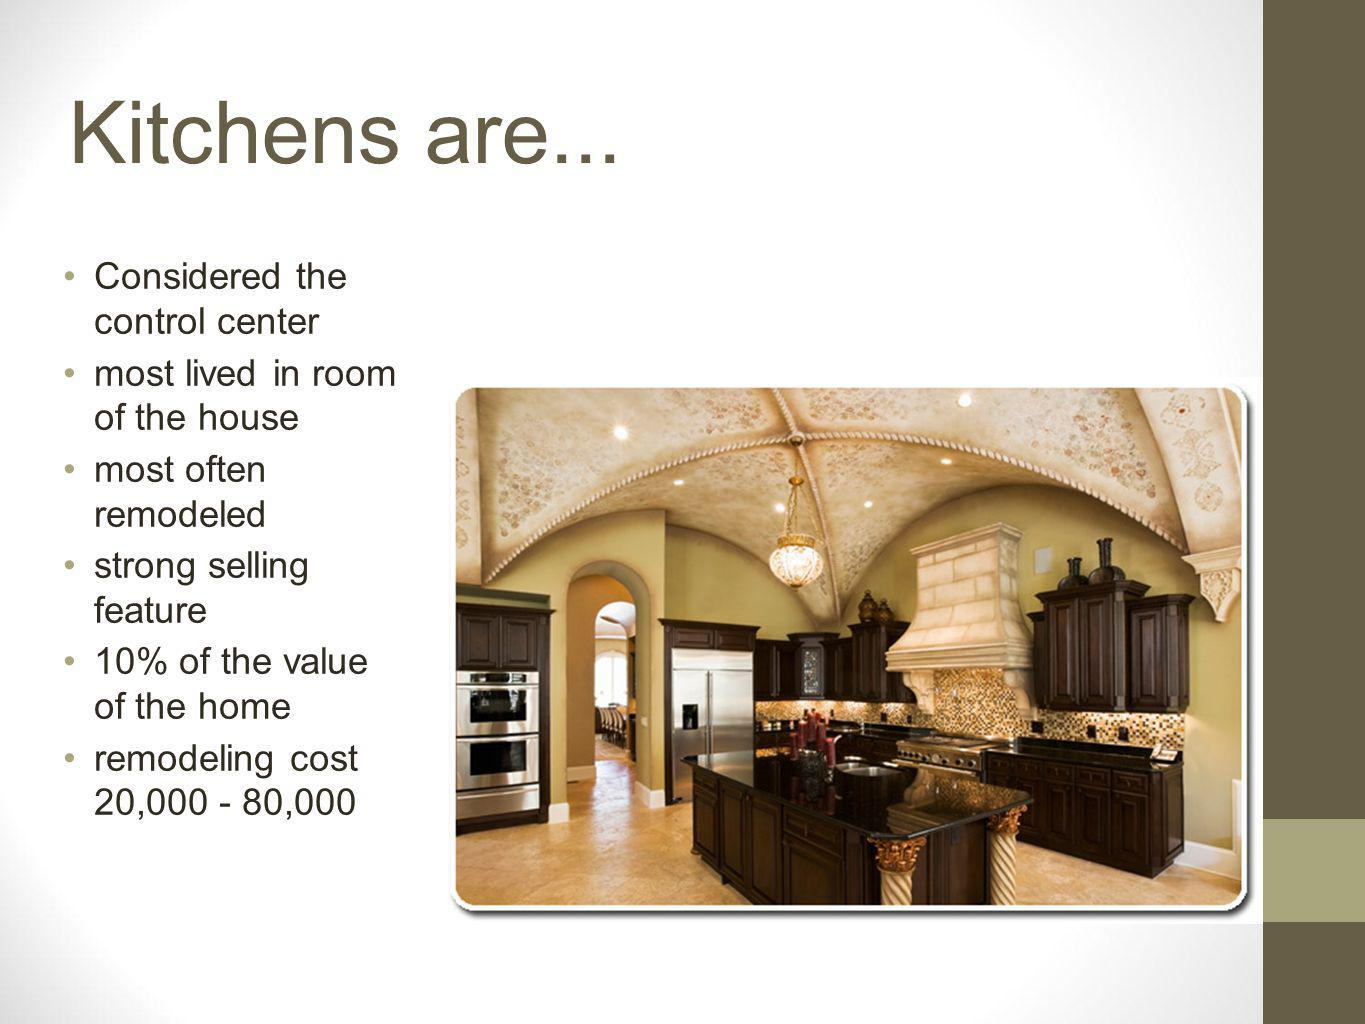 Kitchens are...